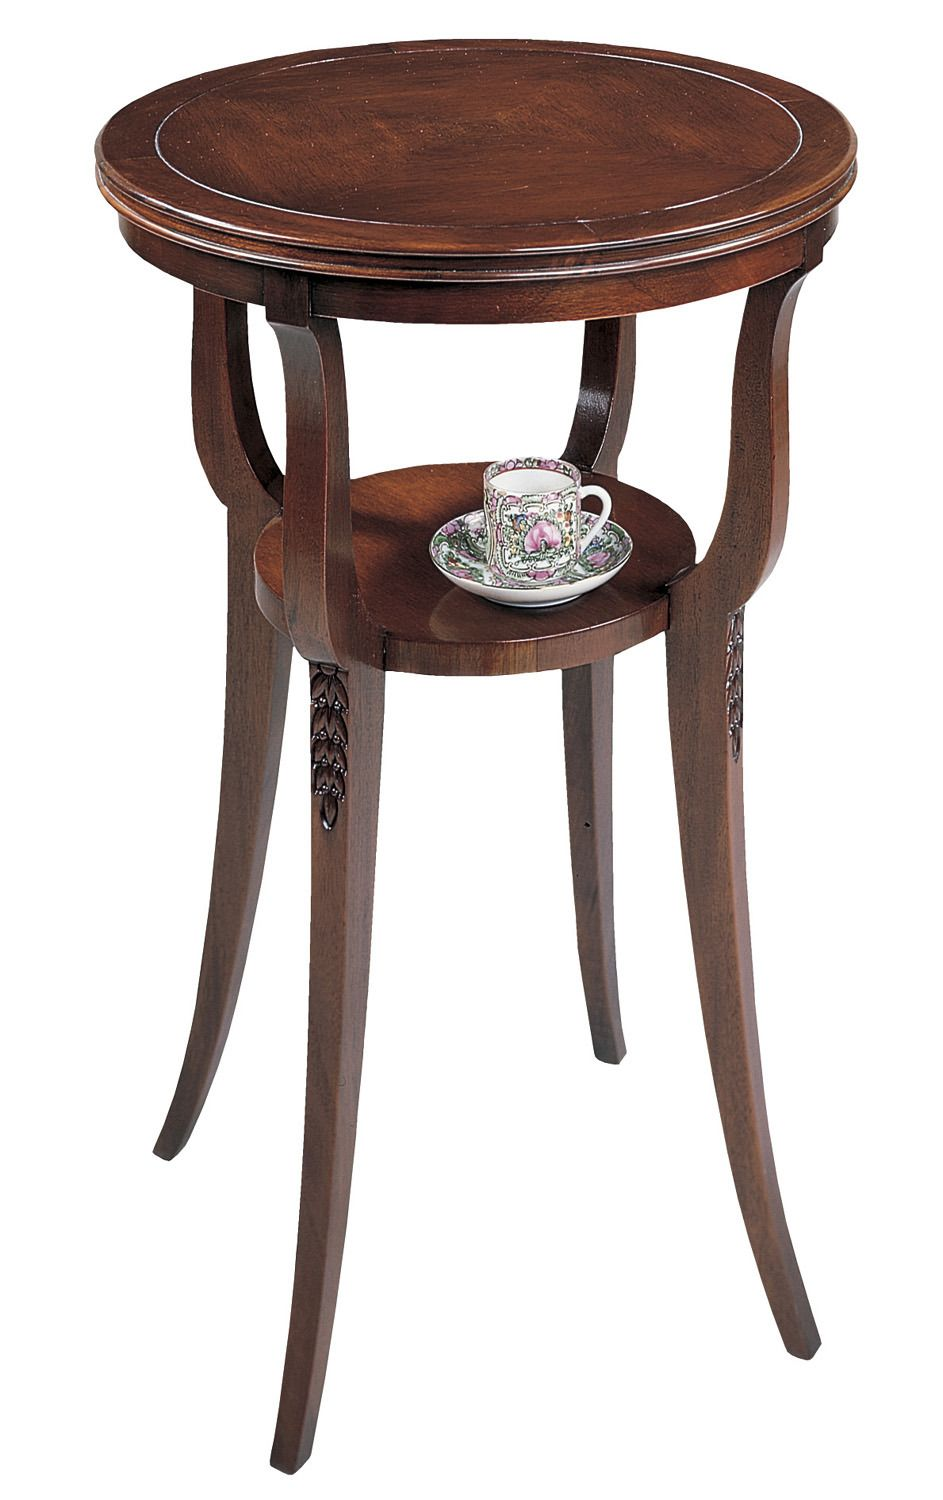 round accent table hekman furniture home gallery with drawer counter height hampton bay wicker patio gold lamp butler tray best drum throne under vacuum goods vanity affordable